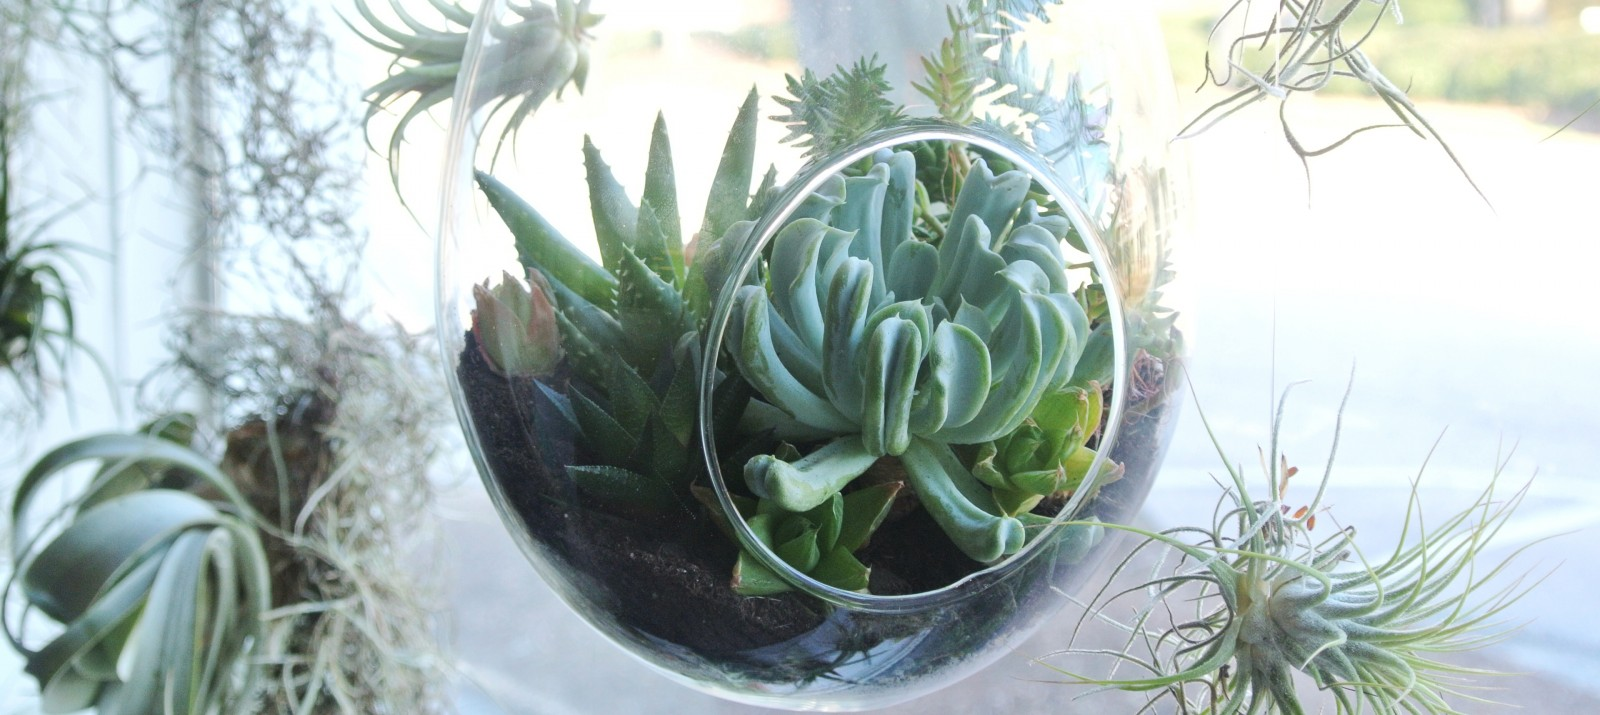 A hanging planter storing a succulent in front of a window.